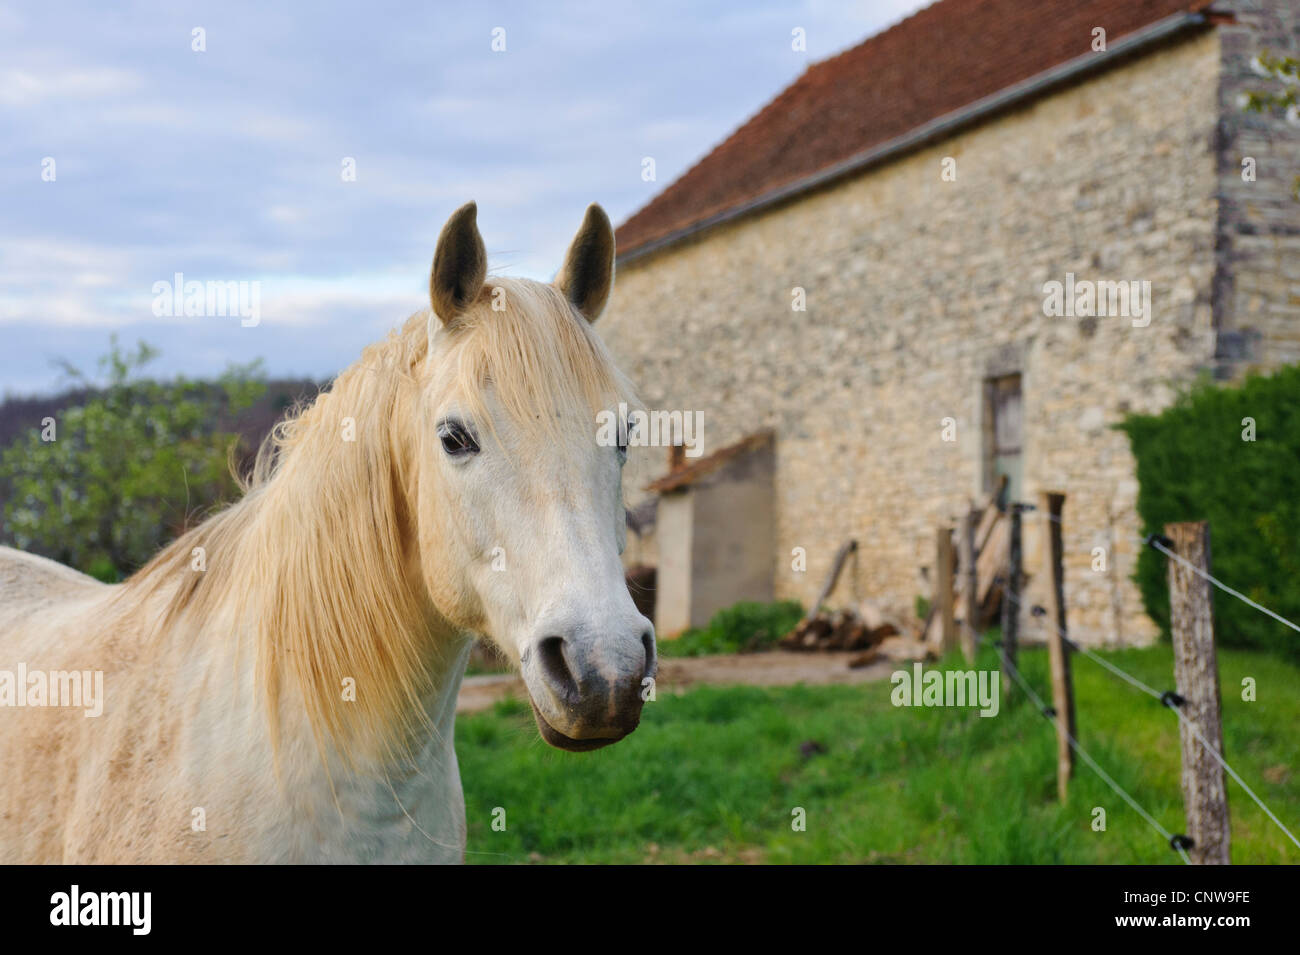 White horse on a French Farm in the Vallée du Lot in Southern France - Stock Image